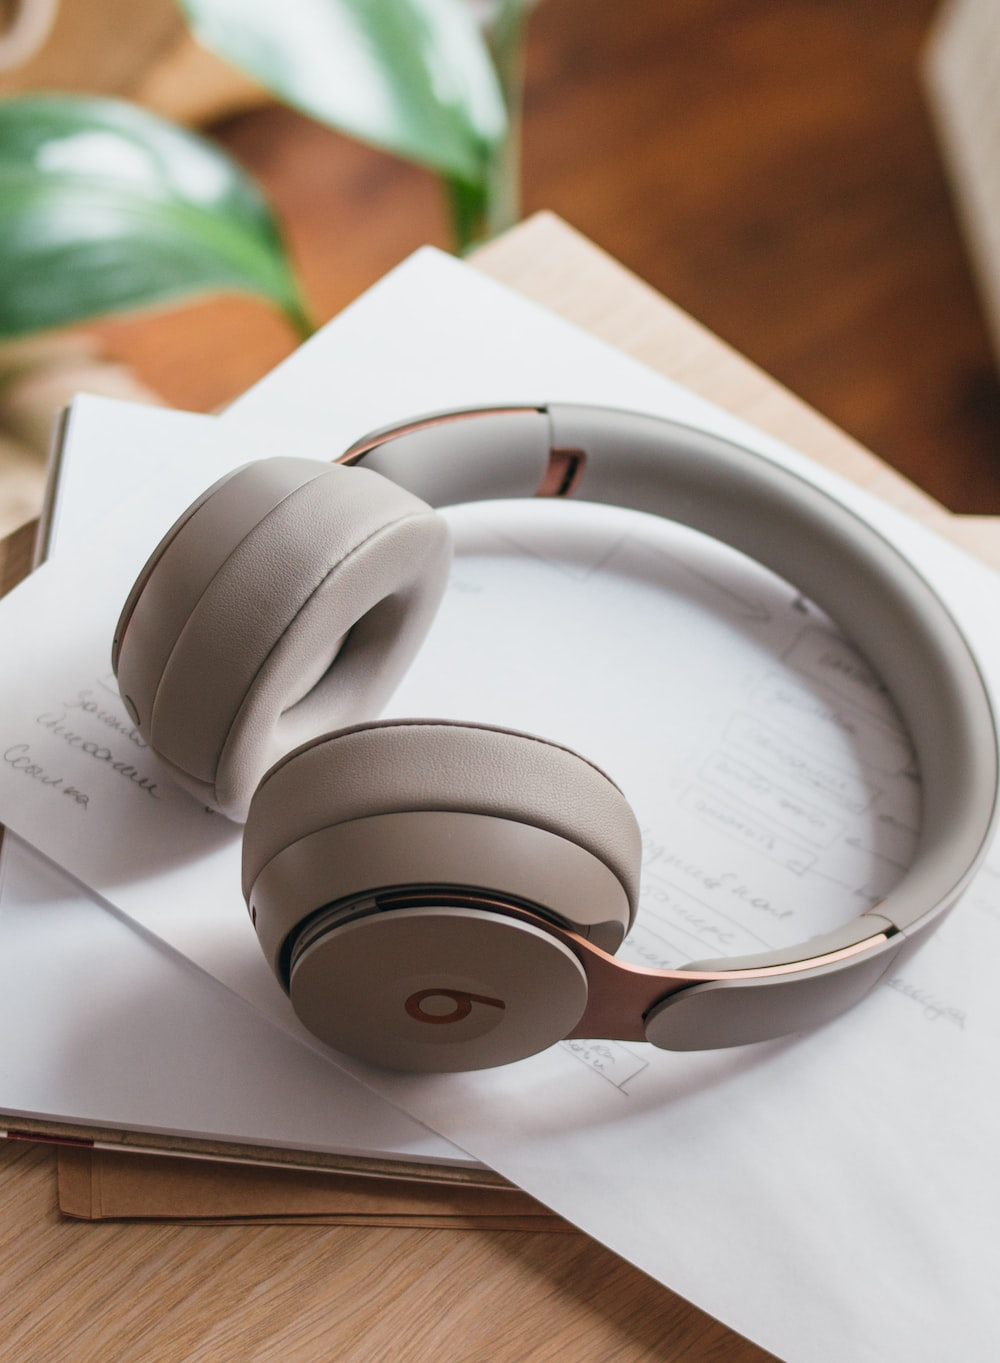 white and black beats by dr dre headphones